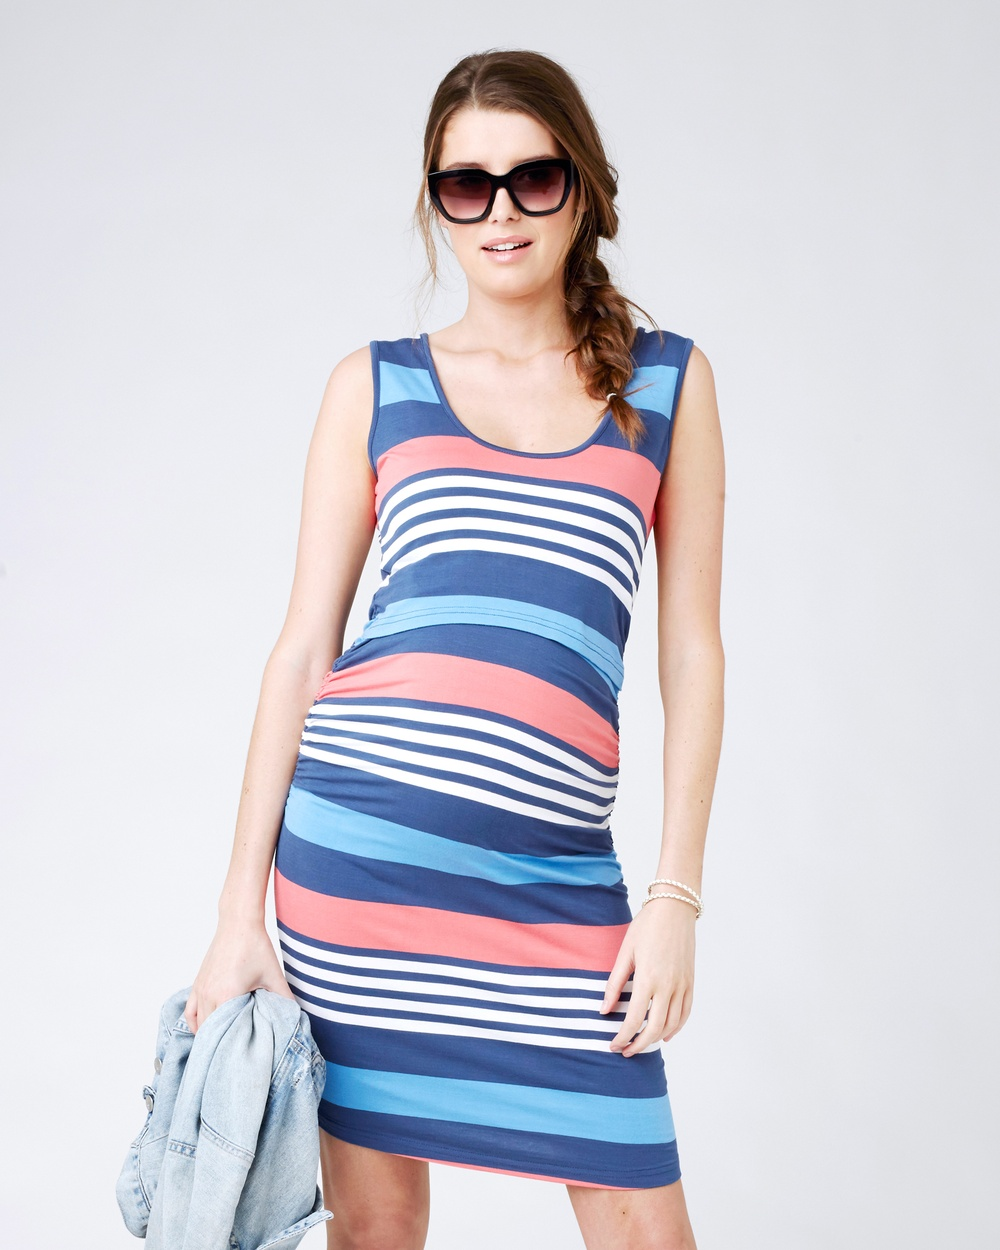 Ripe Maternity Stripe Nursing Dress Bodycon Dresses Maritime Stripe Nursing Dress